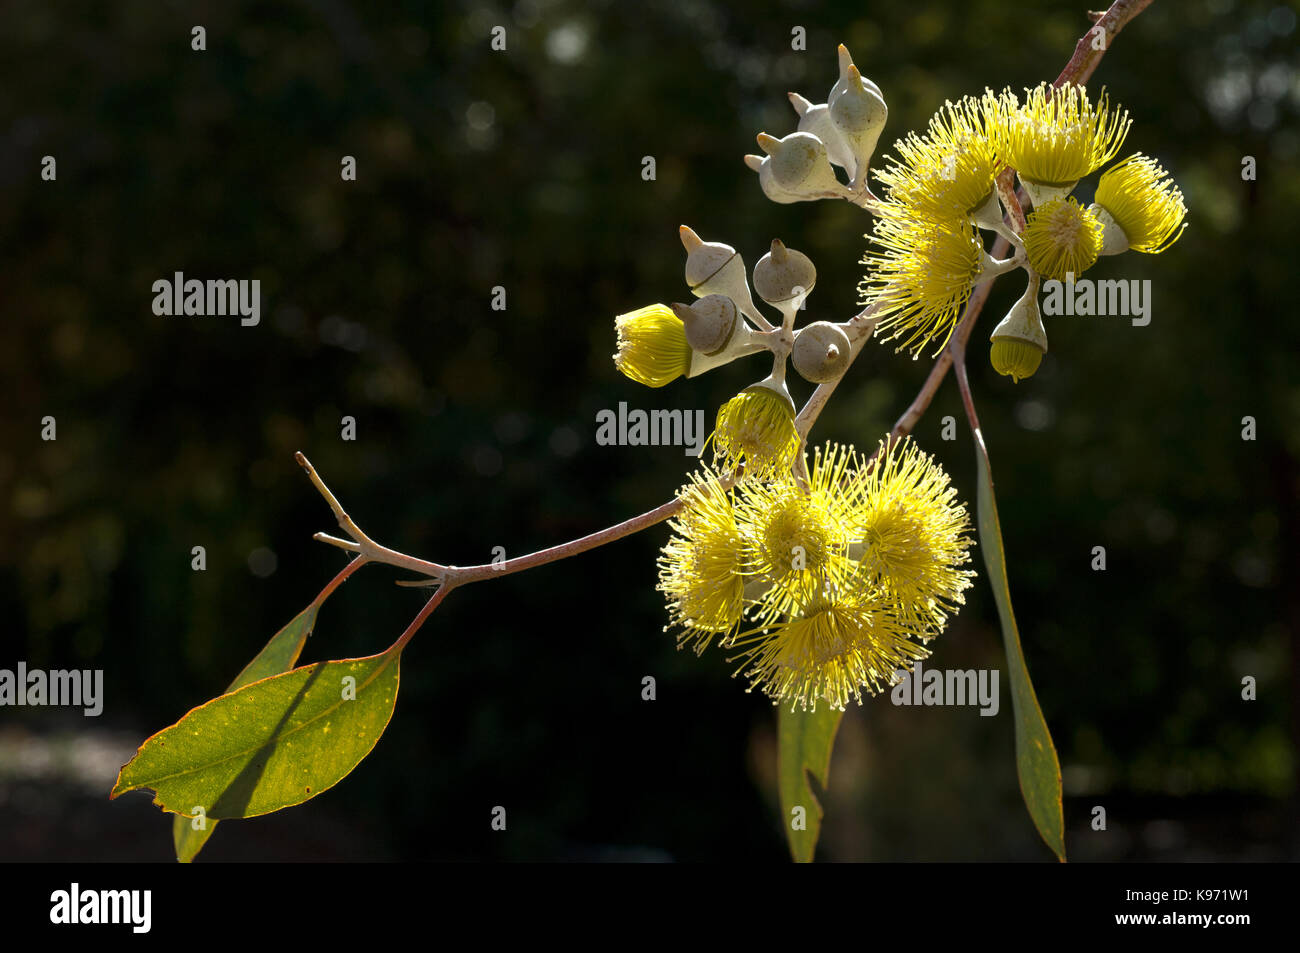 Close up of flower cluster and openning flower buds of Australian native gum, Eucalyptus woodwardii. Stock Photo